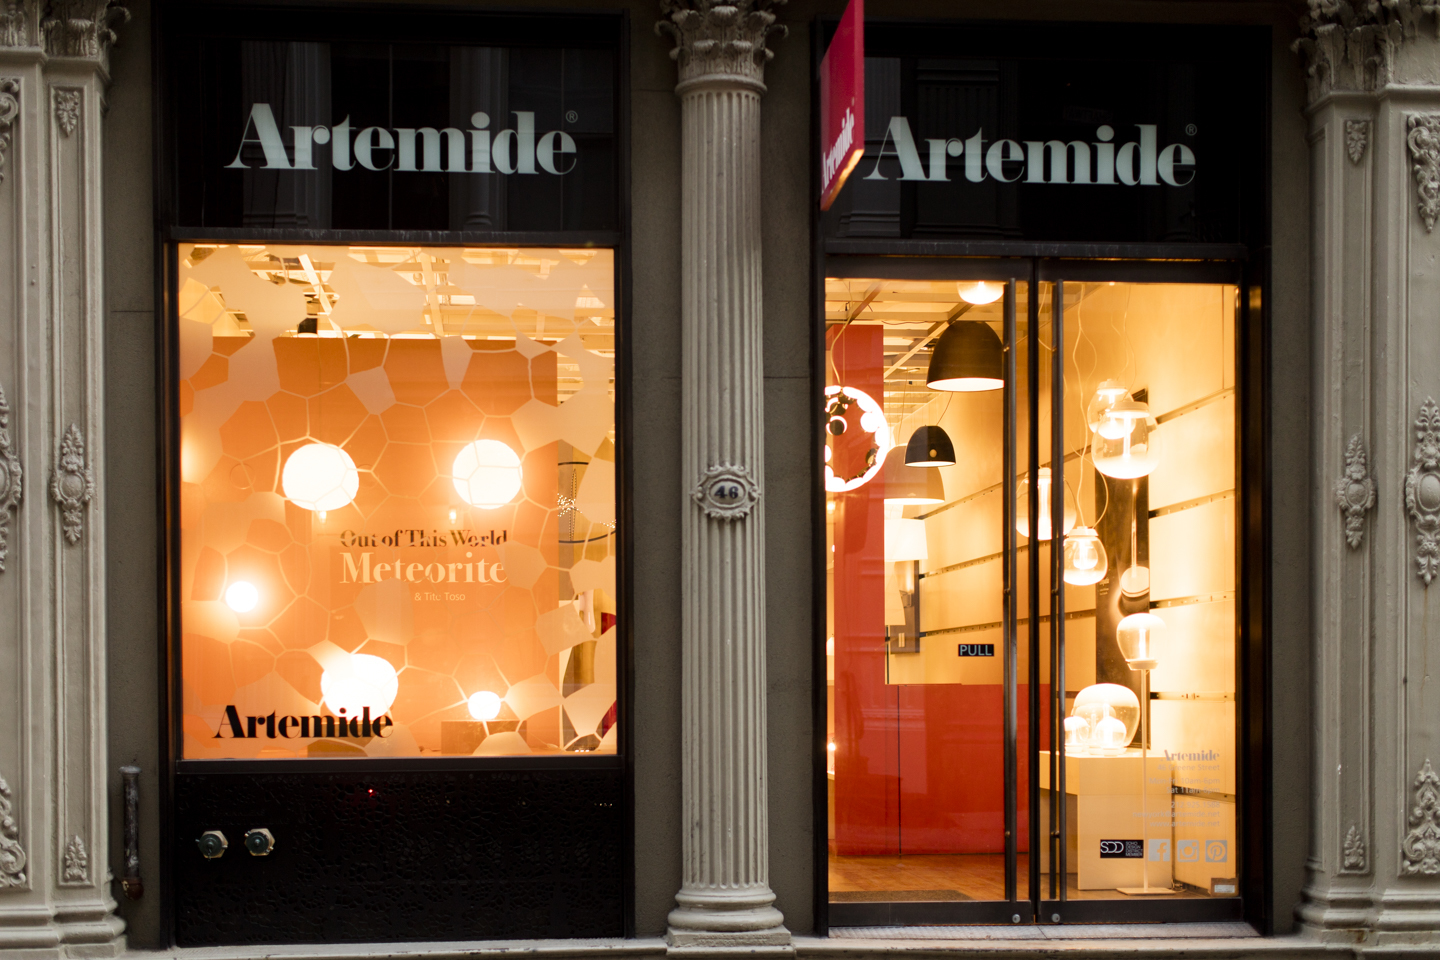 Artemide image provided by venue